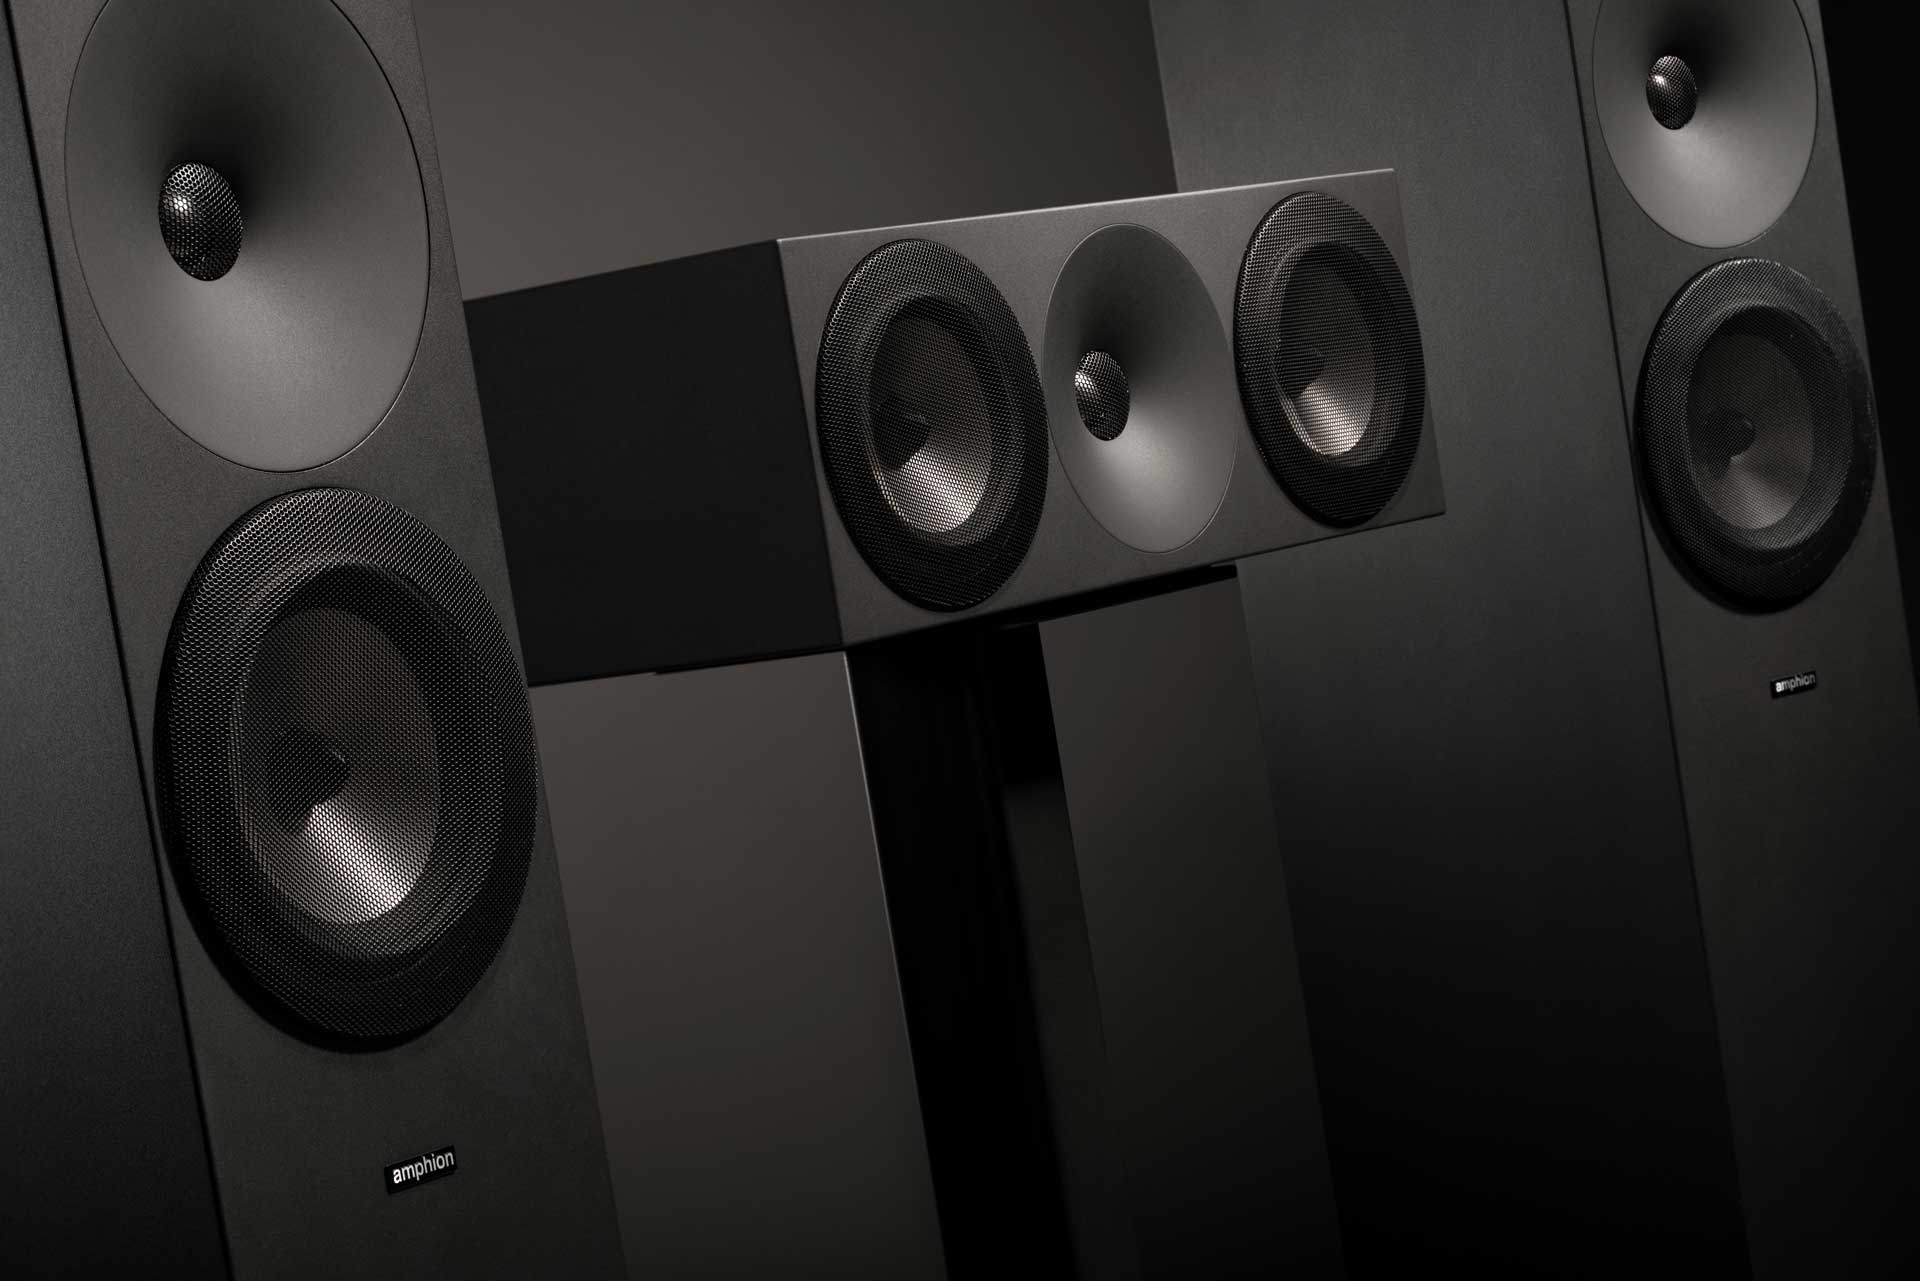 Amphion – <del>Coming Soon</del> Available Now